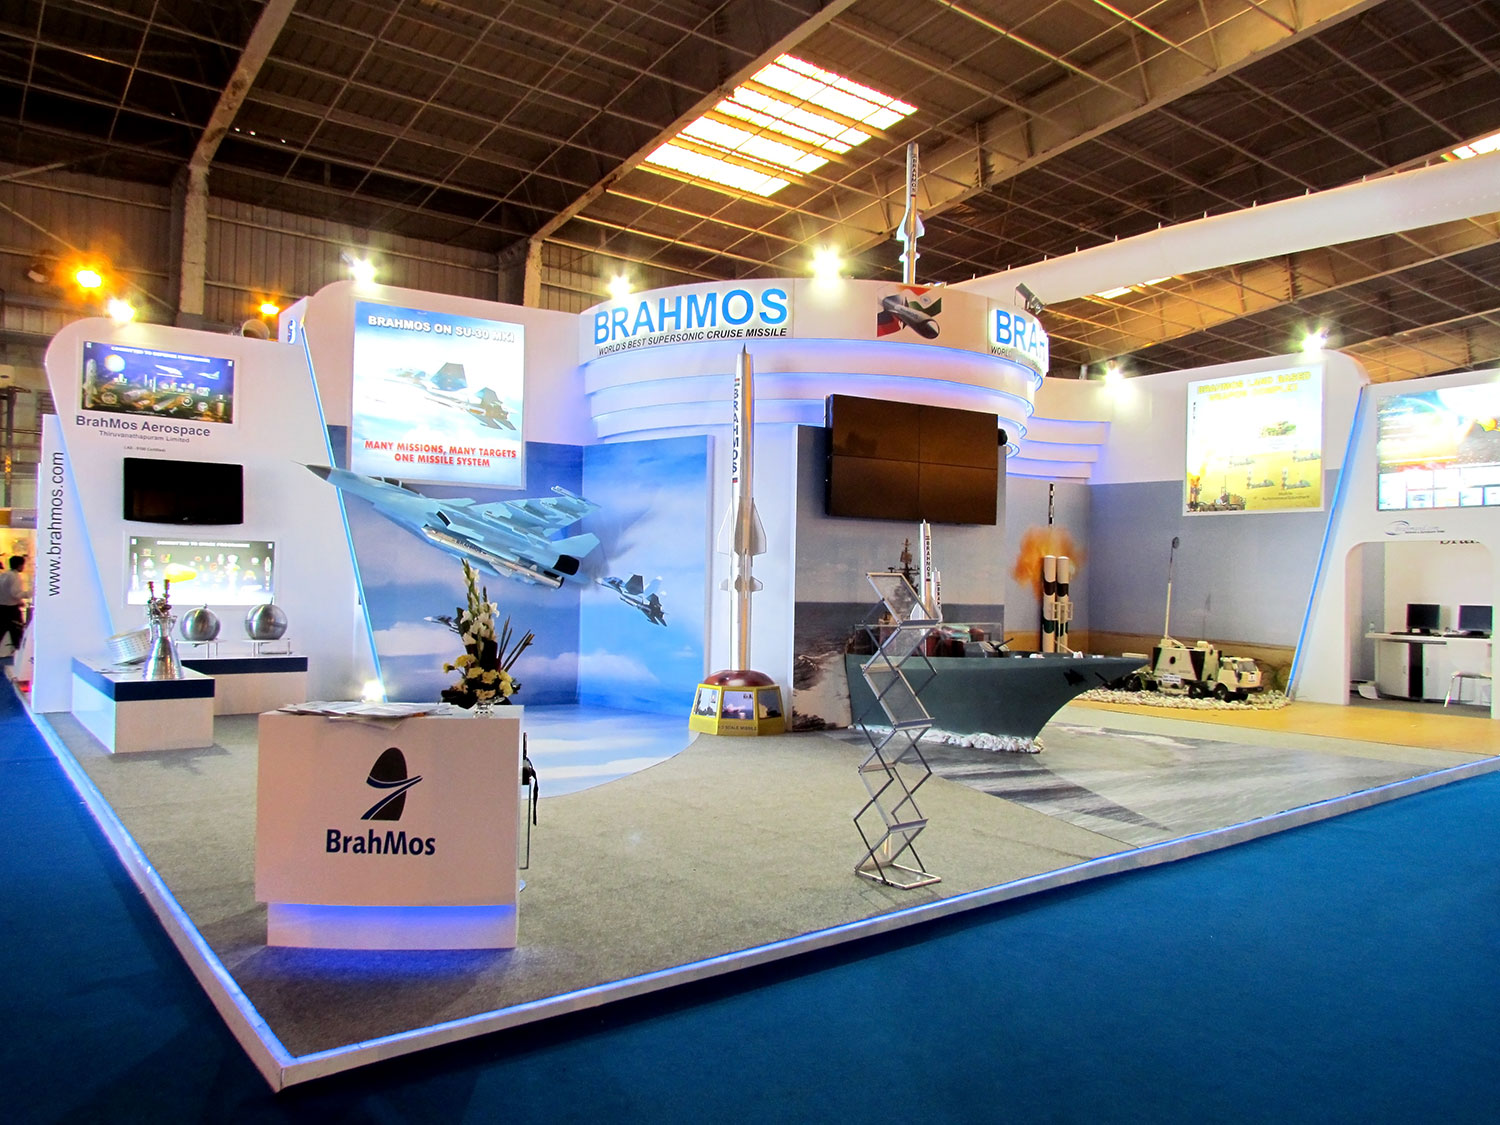 Expo Exhibition Stands Up : Exhibition stand design and build for your defense expo